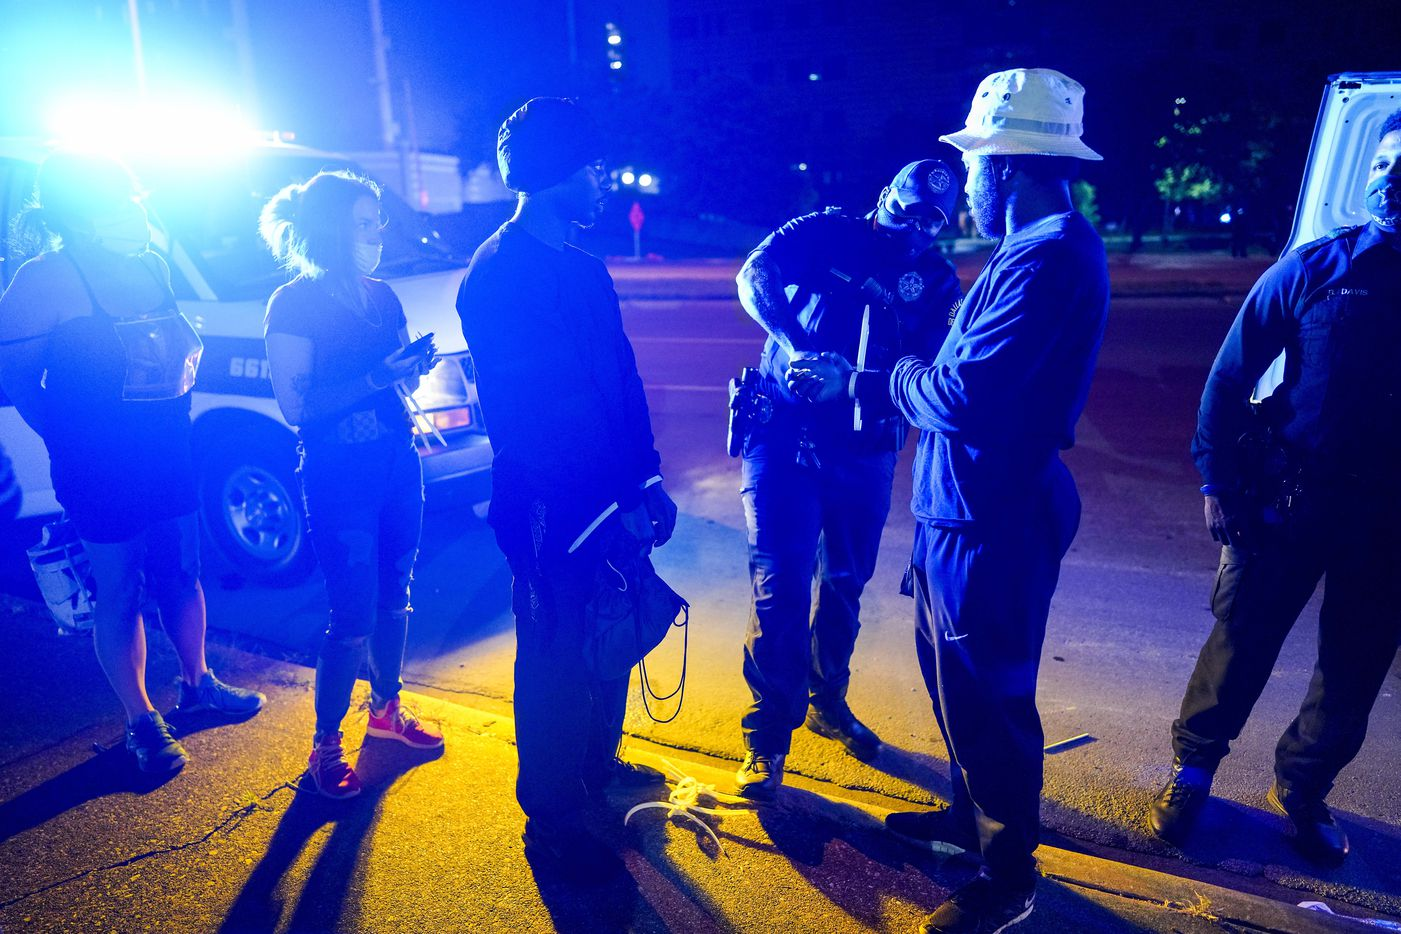 Protesters have their disposable cuffs removed as they are released outside the Frank Crowley Courthouse after being arrested on the Margaret Hunt Hill Bridge while demonstrating against police brutality on Monday, June 1, 2020, in Dallas. Protests continued Monday, a week after the death of George Floyd.